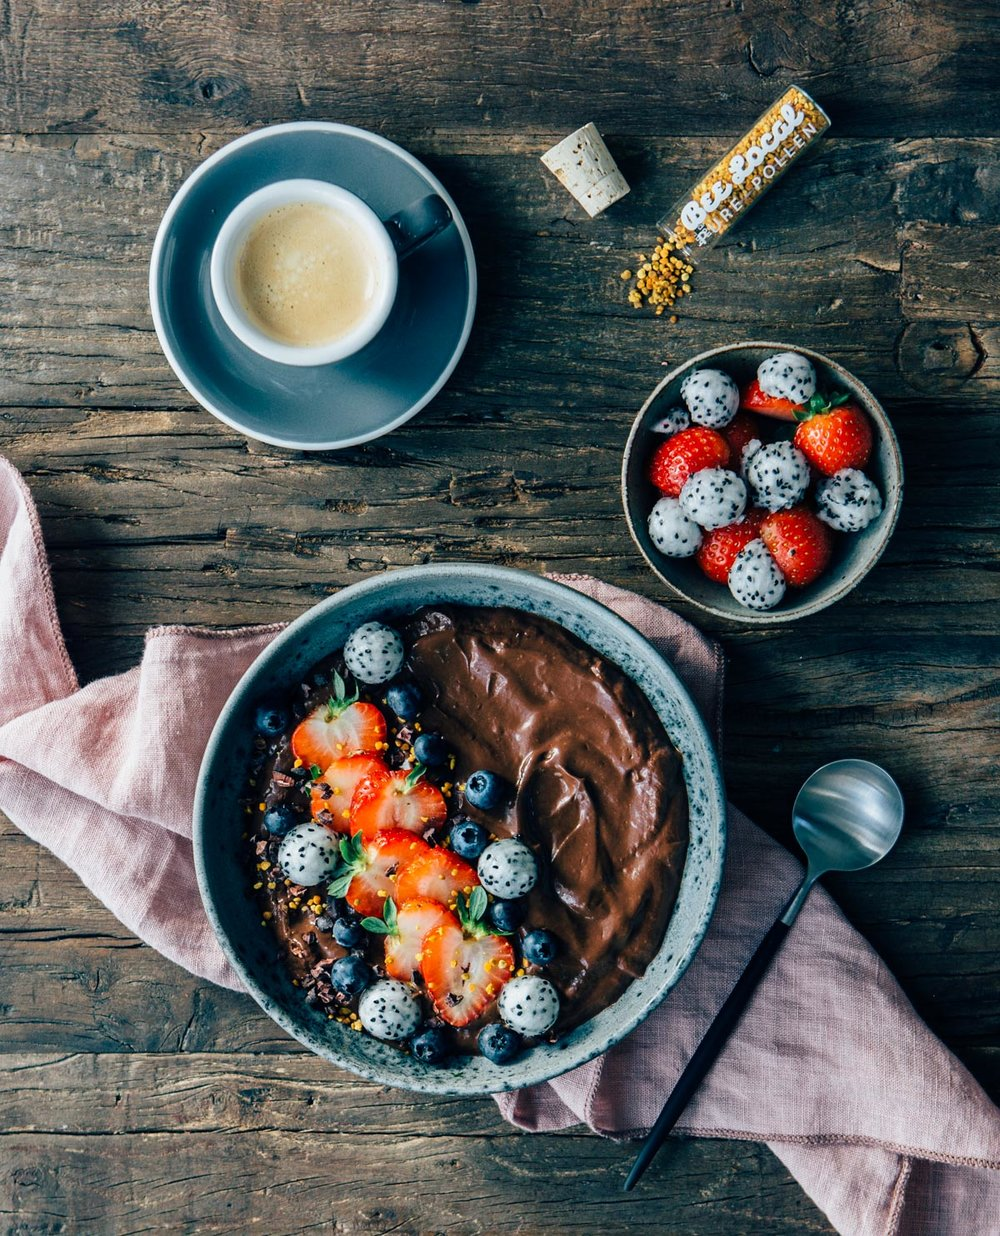 Avocado Cocoa Mousse Bowl - @lumadeline - by Madeline Lu